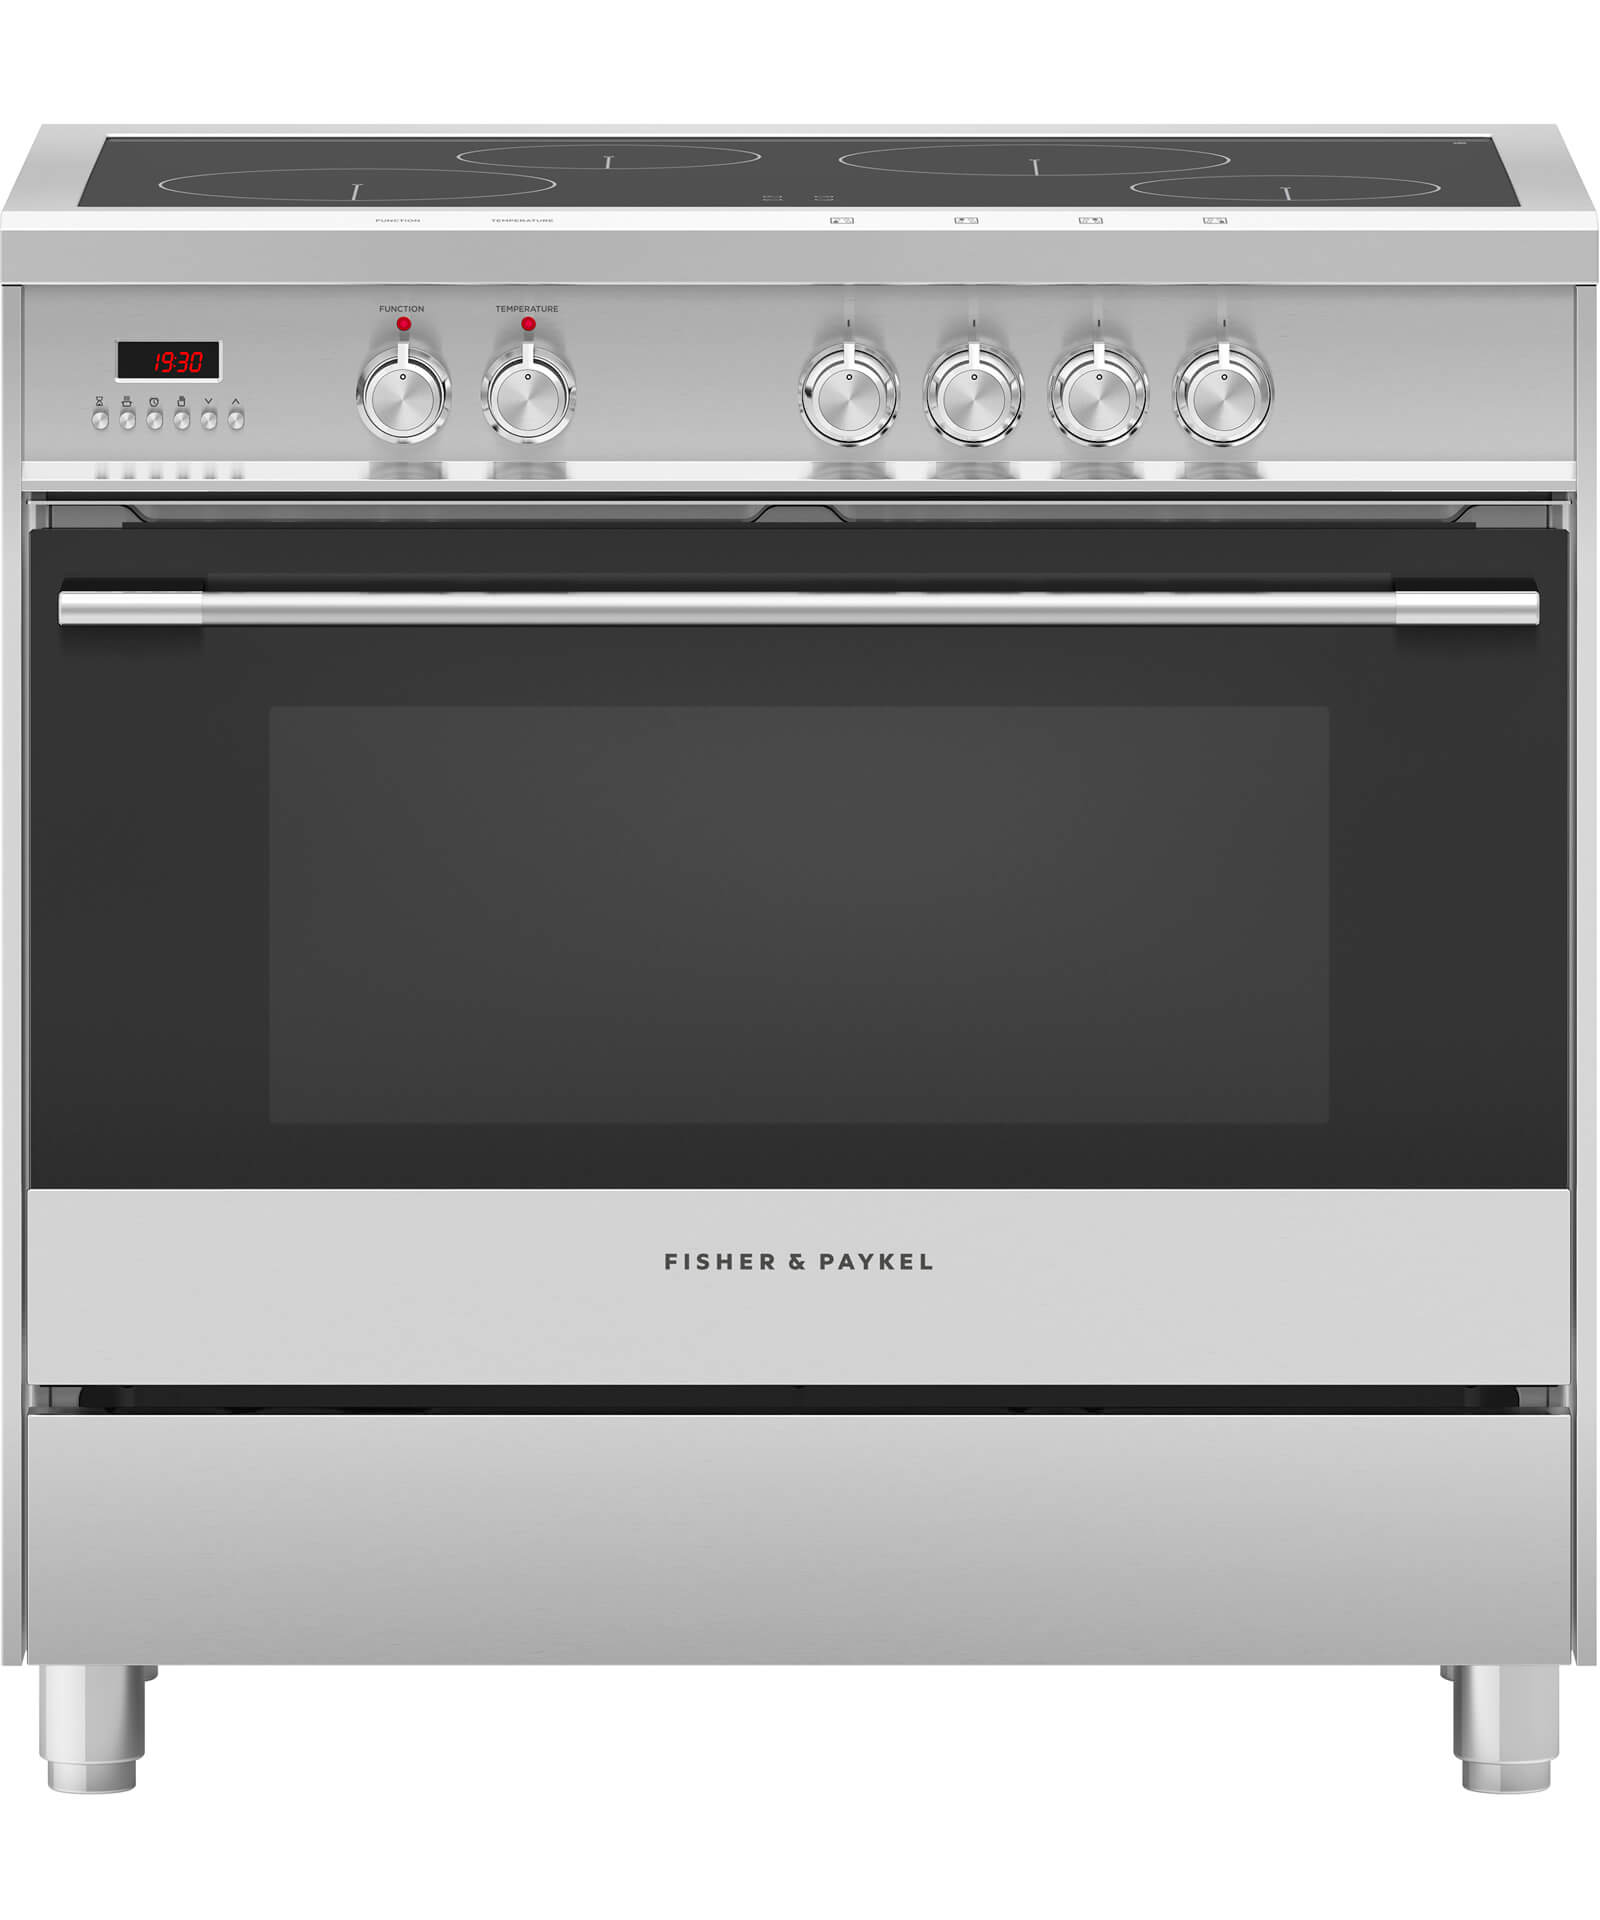 OR90SCI1X1 - 90cm Freestanding Induction Range Cooker - Series 1 - 81679